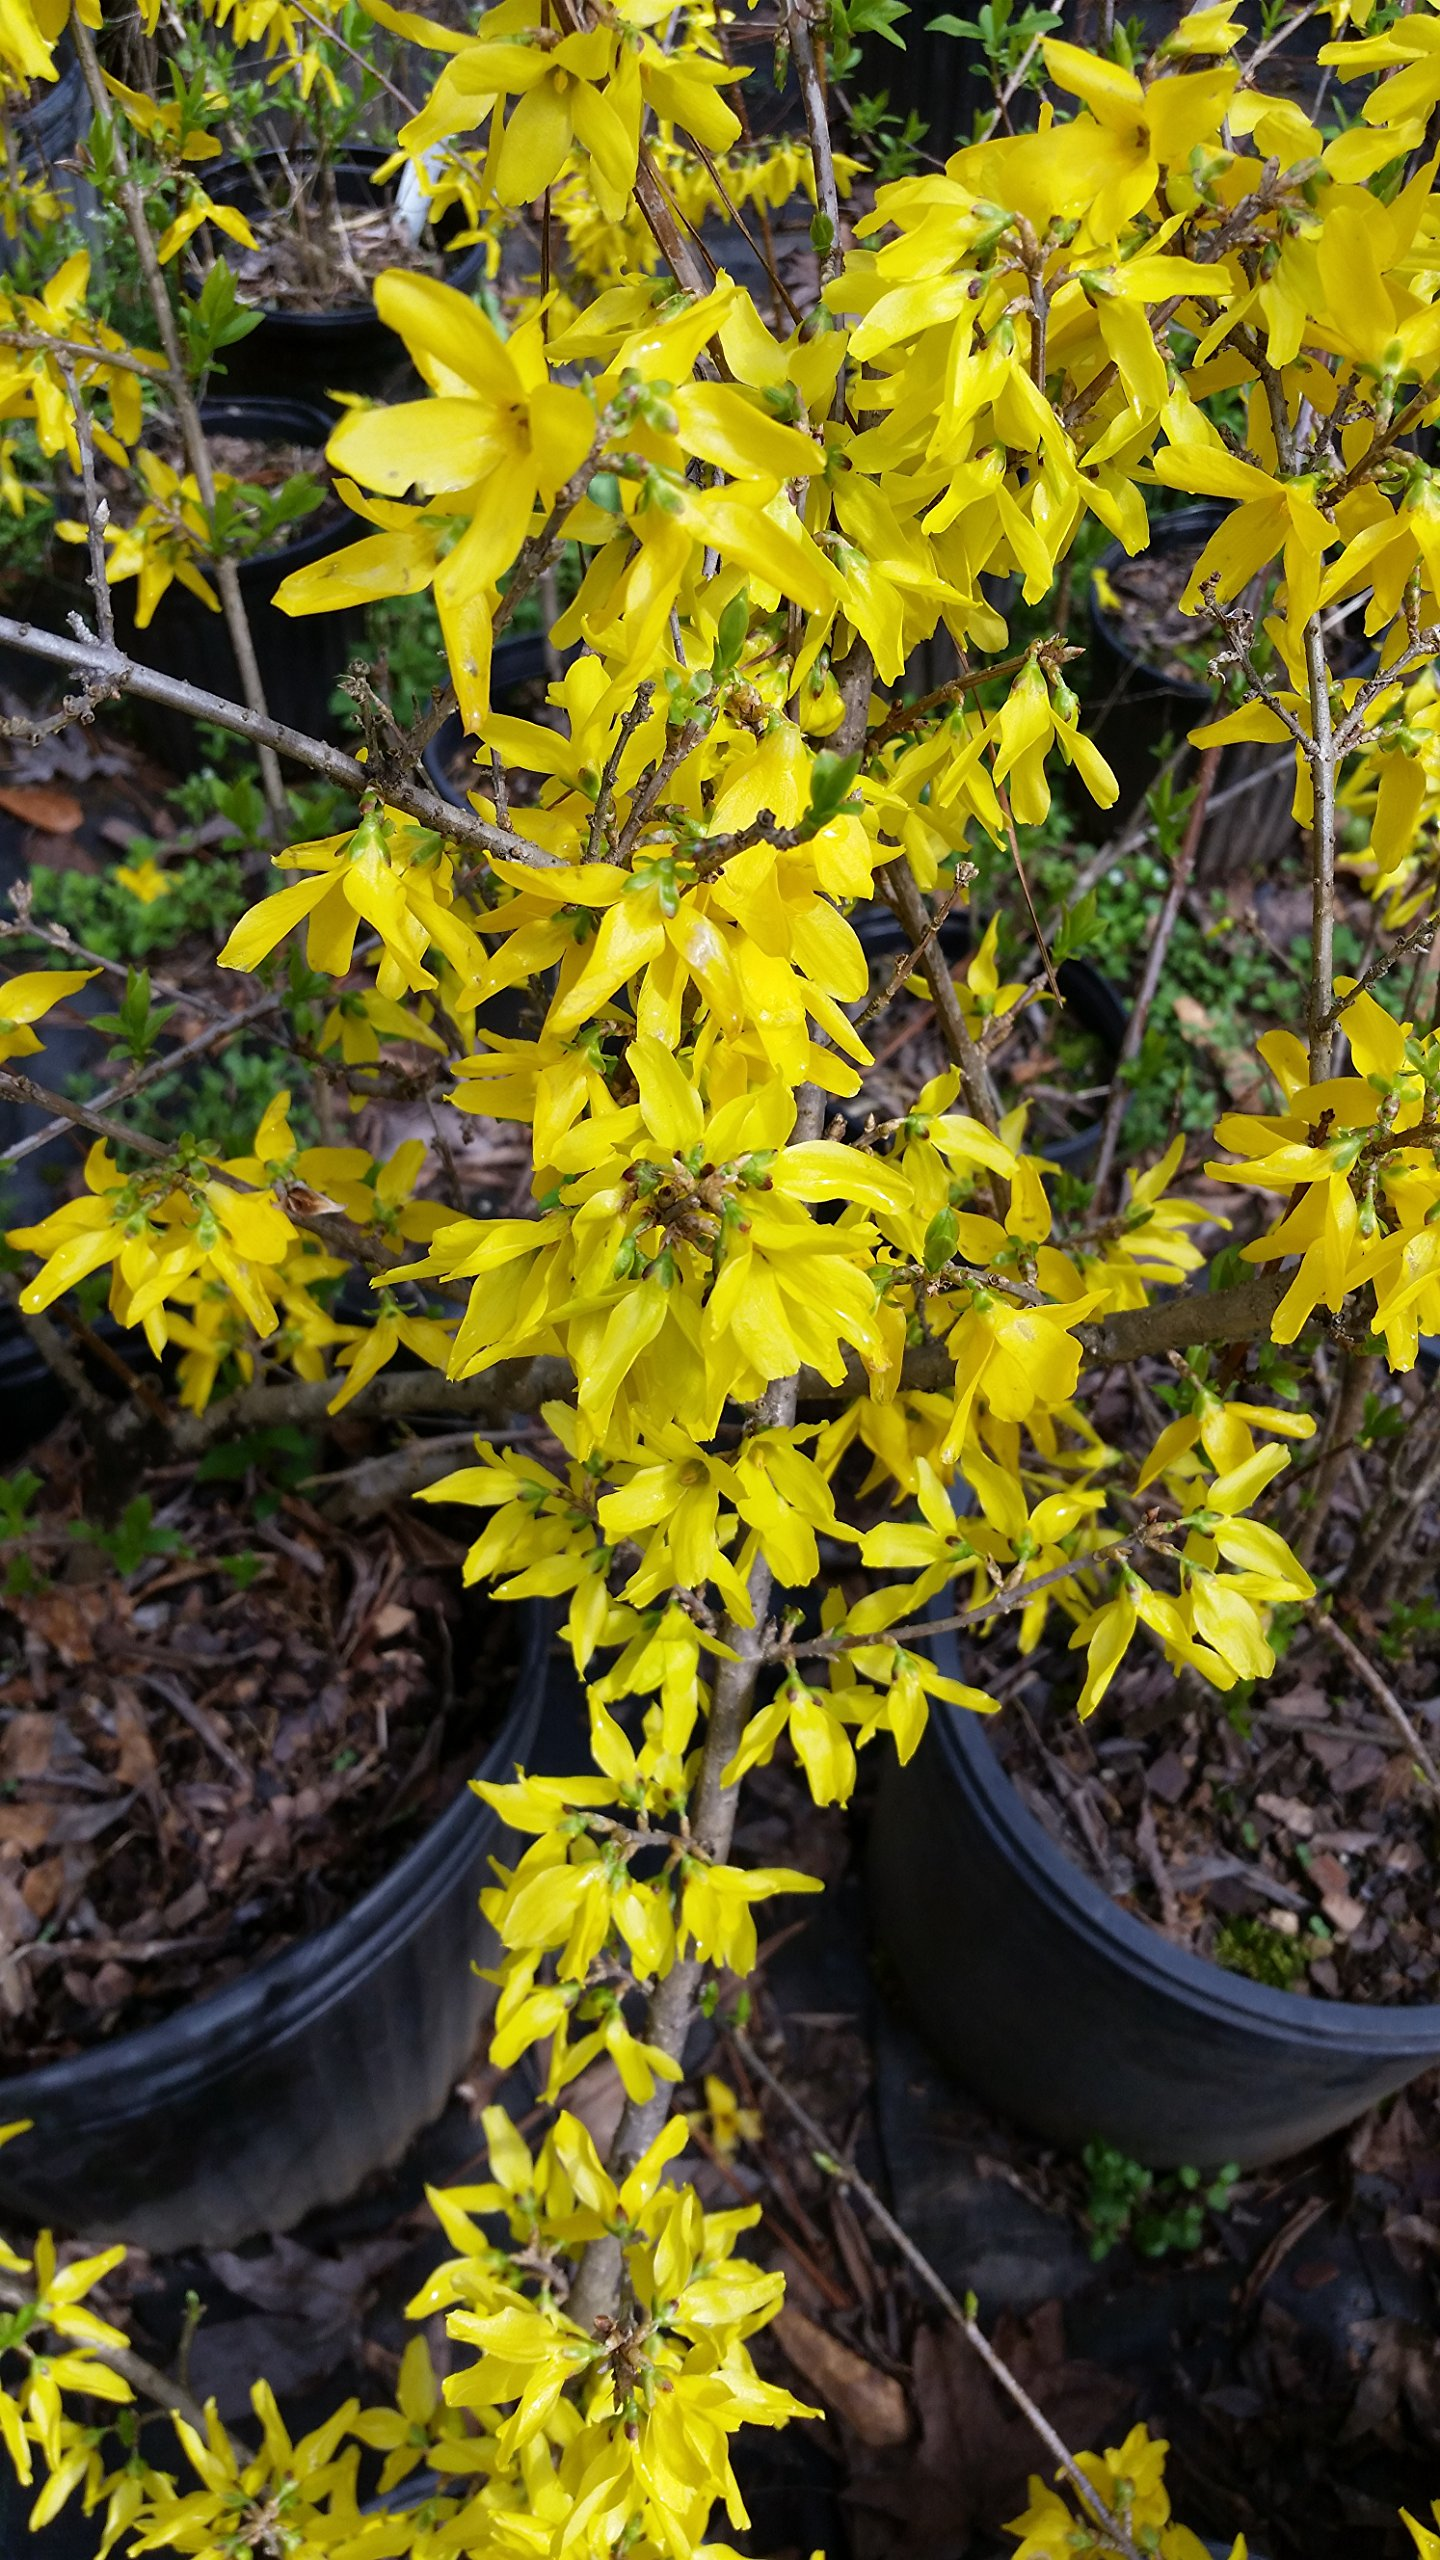 (1 Gallon) FORSYTHIA '' NEW HAMPSHIRE GOLD'' Beautiful, Vibrant Yellow Blooms Late Winter to Spring, Attractive Purple Tinge to Fall Leaves. Cold Hardy Variety